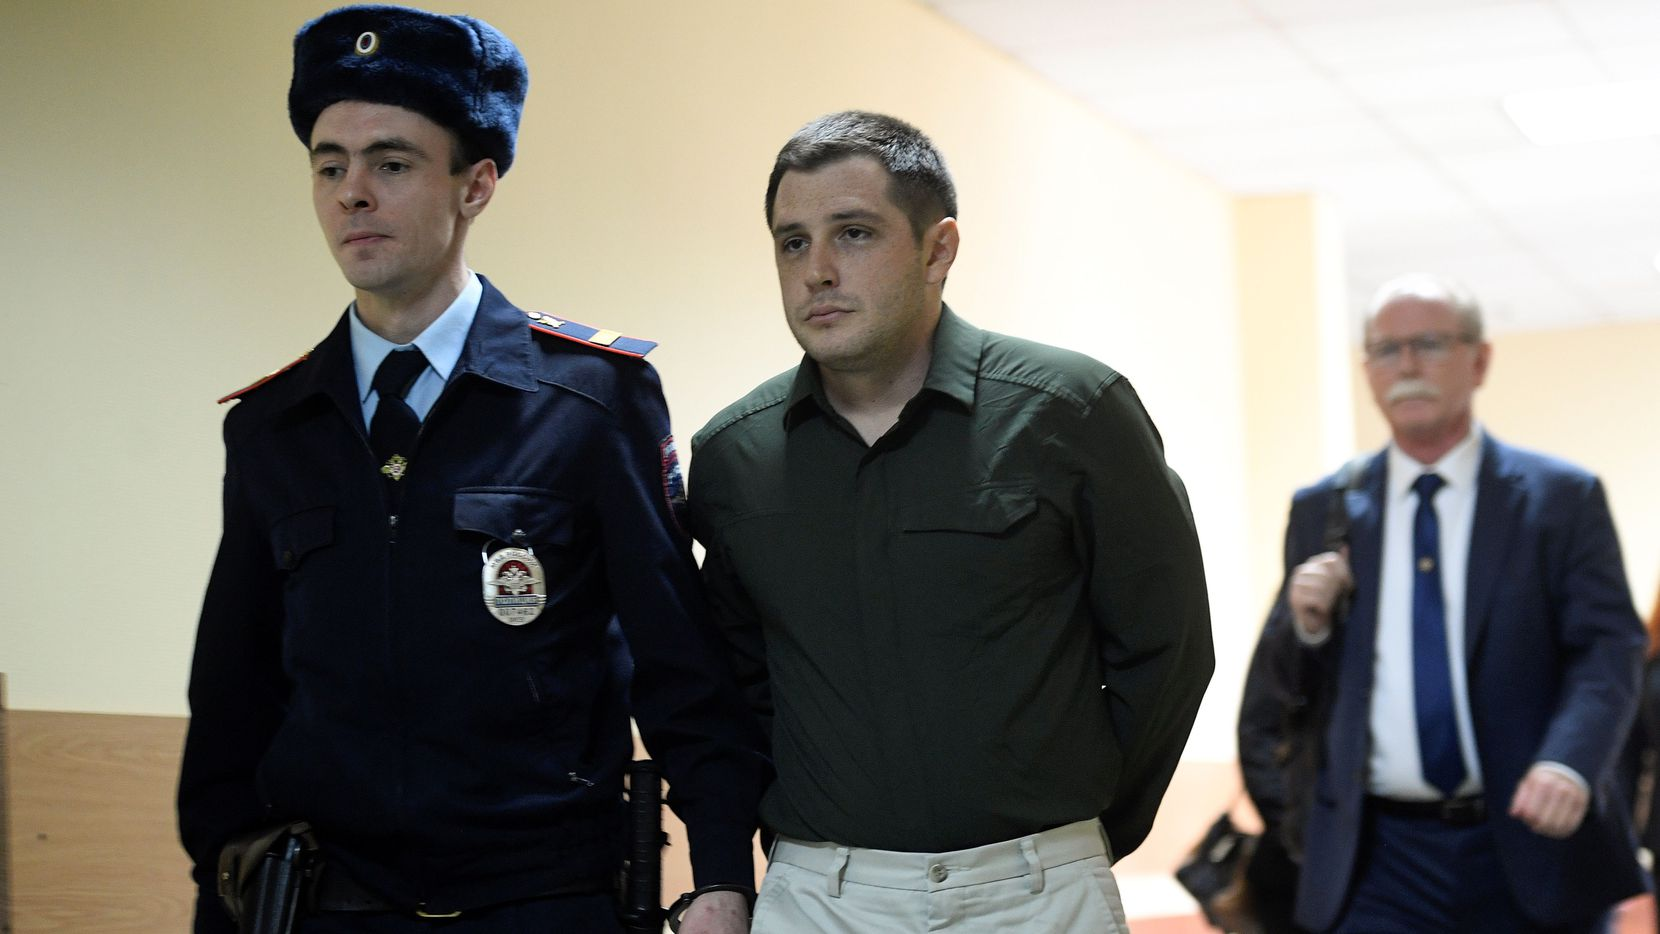 Police officers escort US ex-marine Trevor Reed, charged with attacking police, into a courtroom prior to a hearing in Moscow on March 11, 2020. (Photo by Alexander NEMENOV / AFP) (Photo by ALEXANDER NEMENOV/AFP via Getty Images)